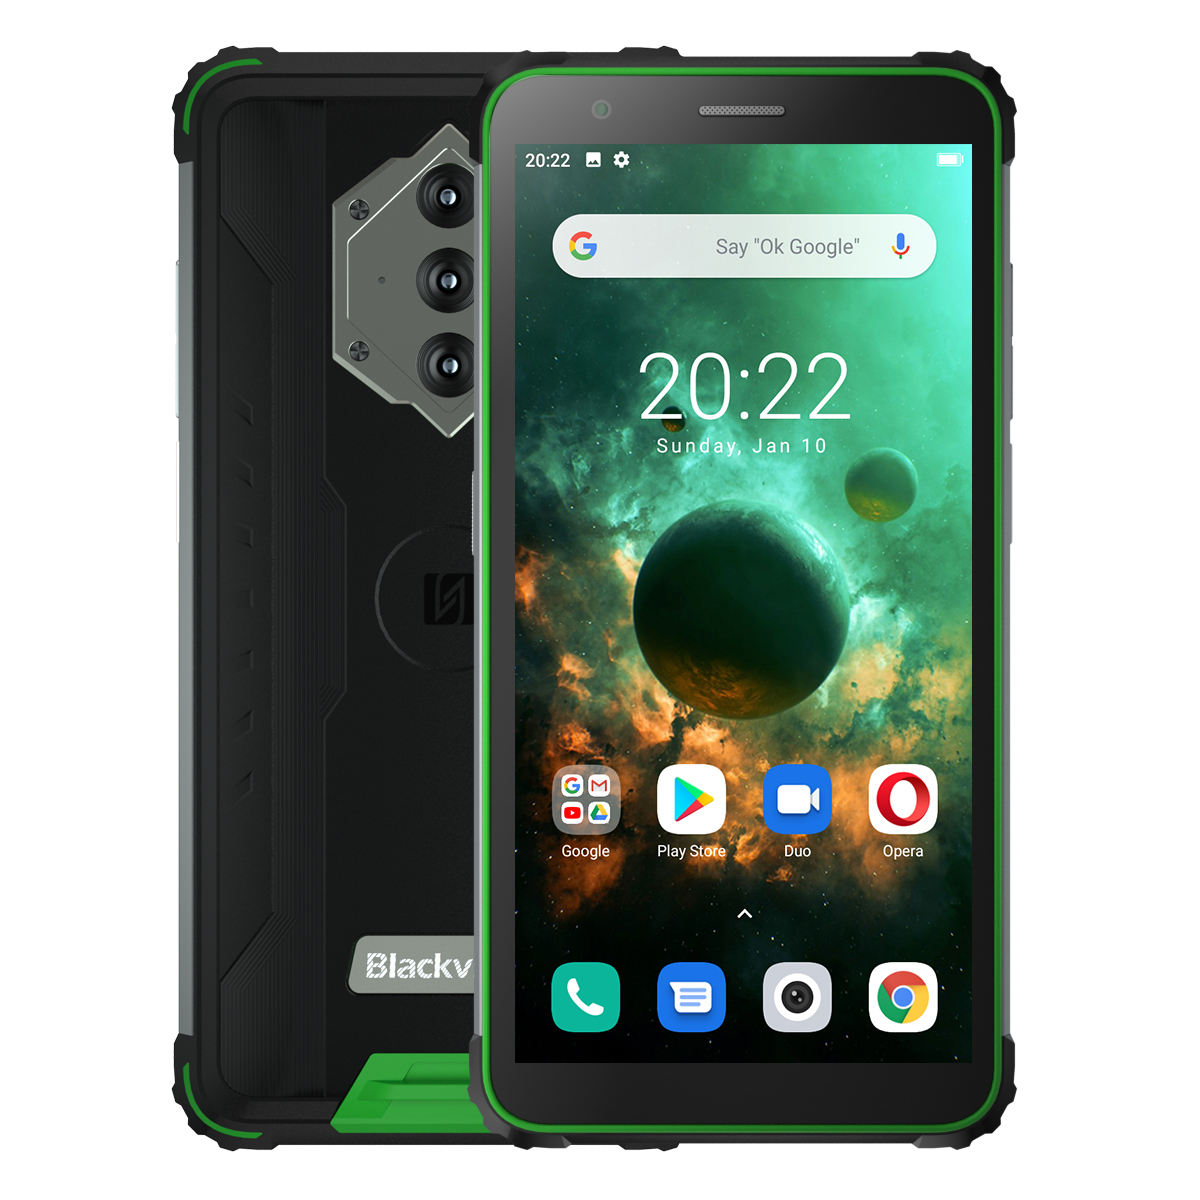 NFC Android 10 Blackview BV6600 Octa Core 4GB + 64GB IP68 Impermeabile 8580mAh Rugged Smartphone 16MP Macchina Fotografica